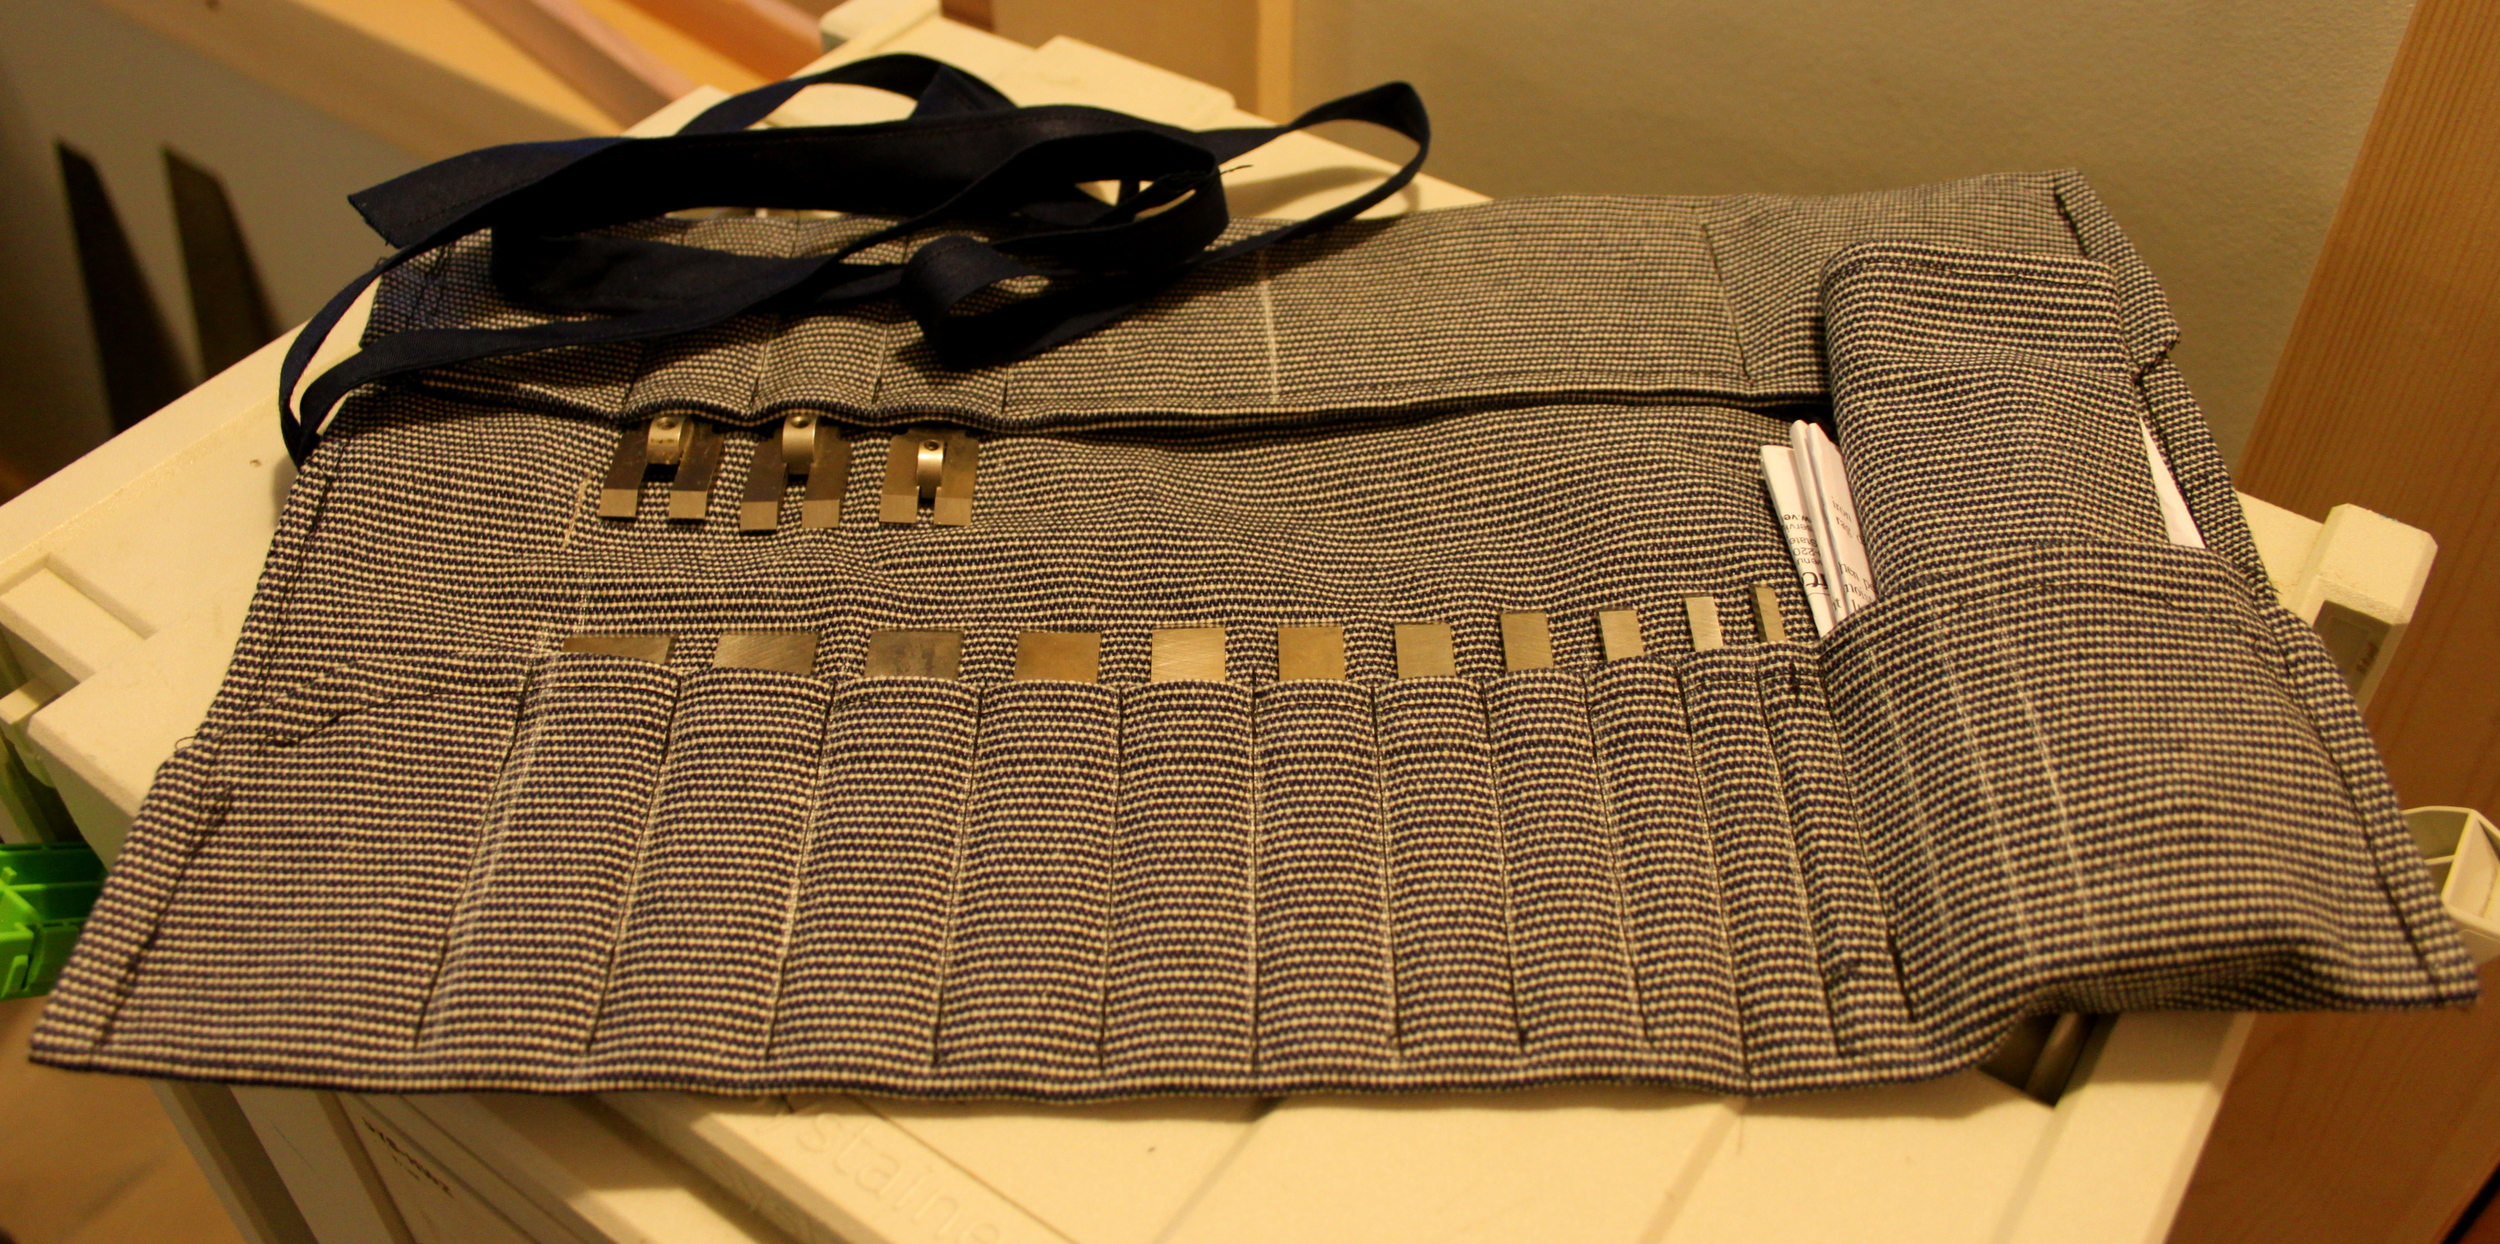 Open tool roll displaying all the cutters - both tongue & groove.